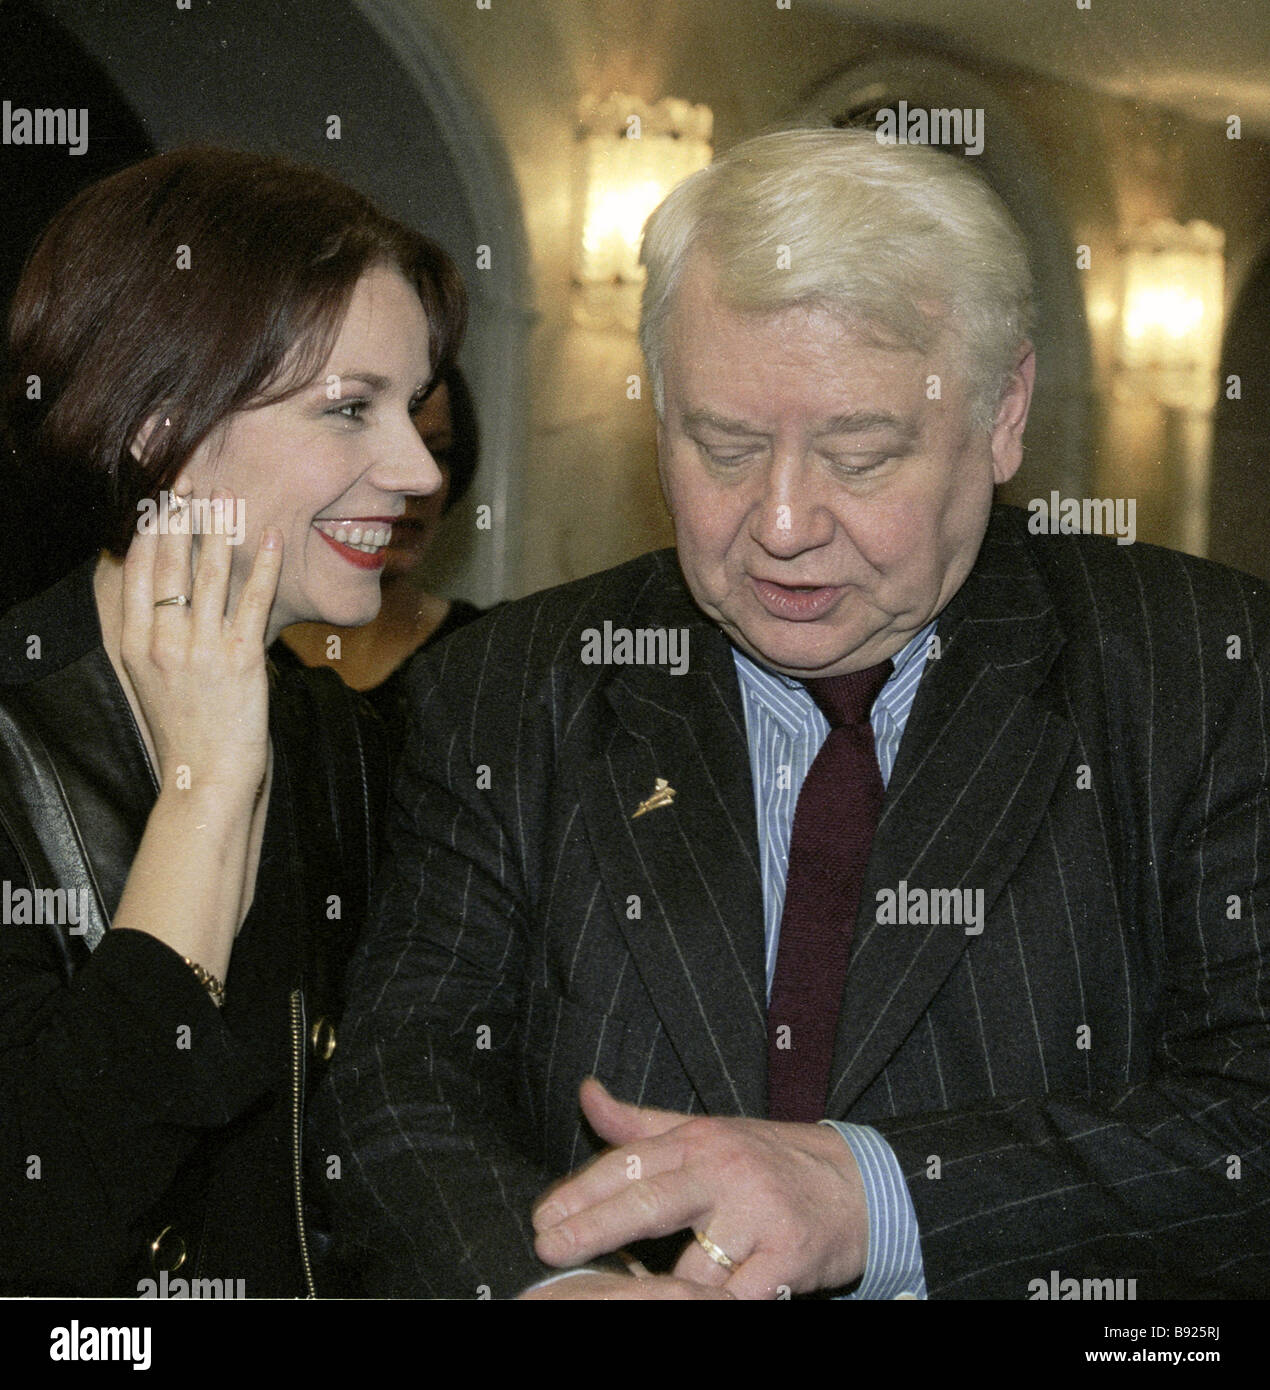 The wife of Oleg Tabakov regrets about the abortion made 06.10.2017 7